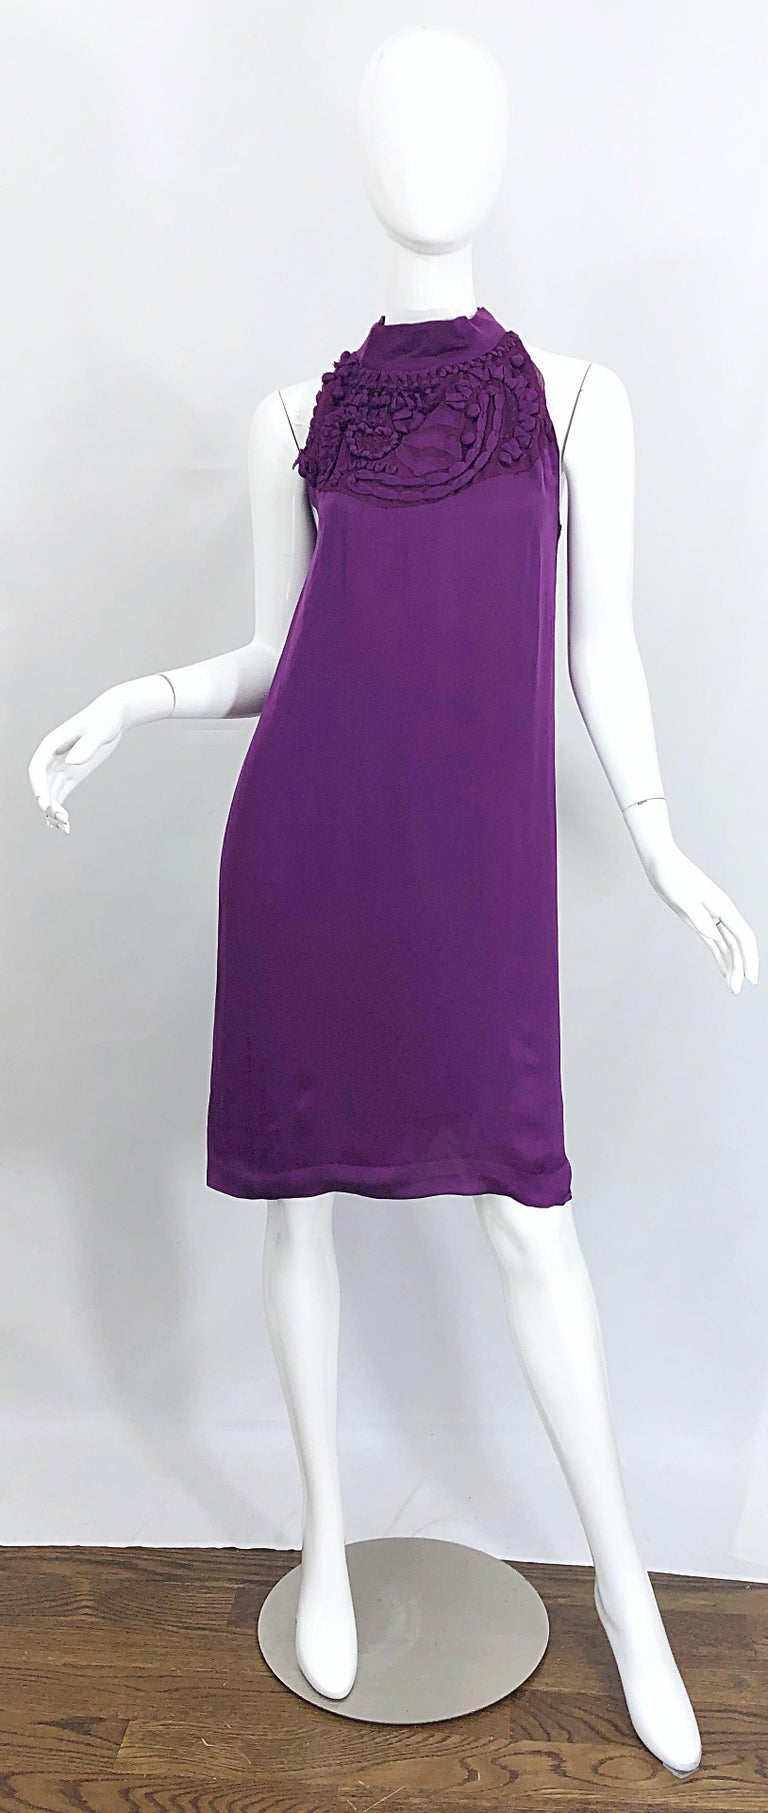 Chic YVES SAINT LAURENT Autumn / Winter 2007 purple silk dress! Features intricate details above bust. Single button closure at back neck. Fully lined. Can easily be worn day to evening. Perfect with sandals, wedges or flats for day, and heels or